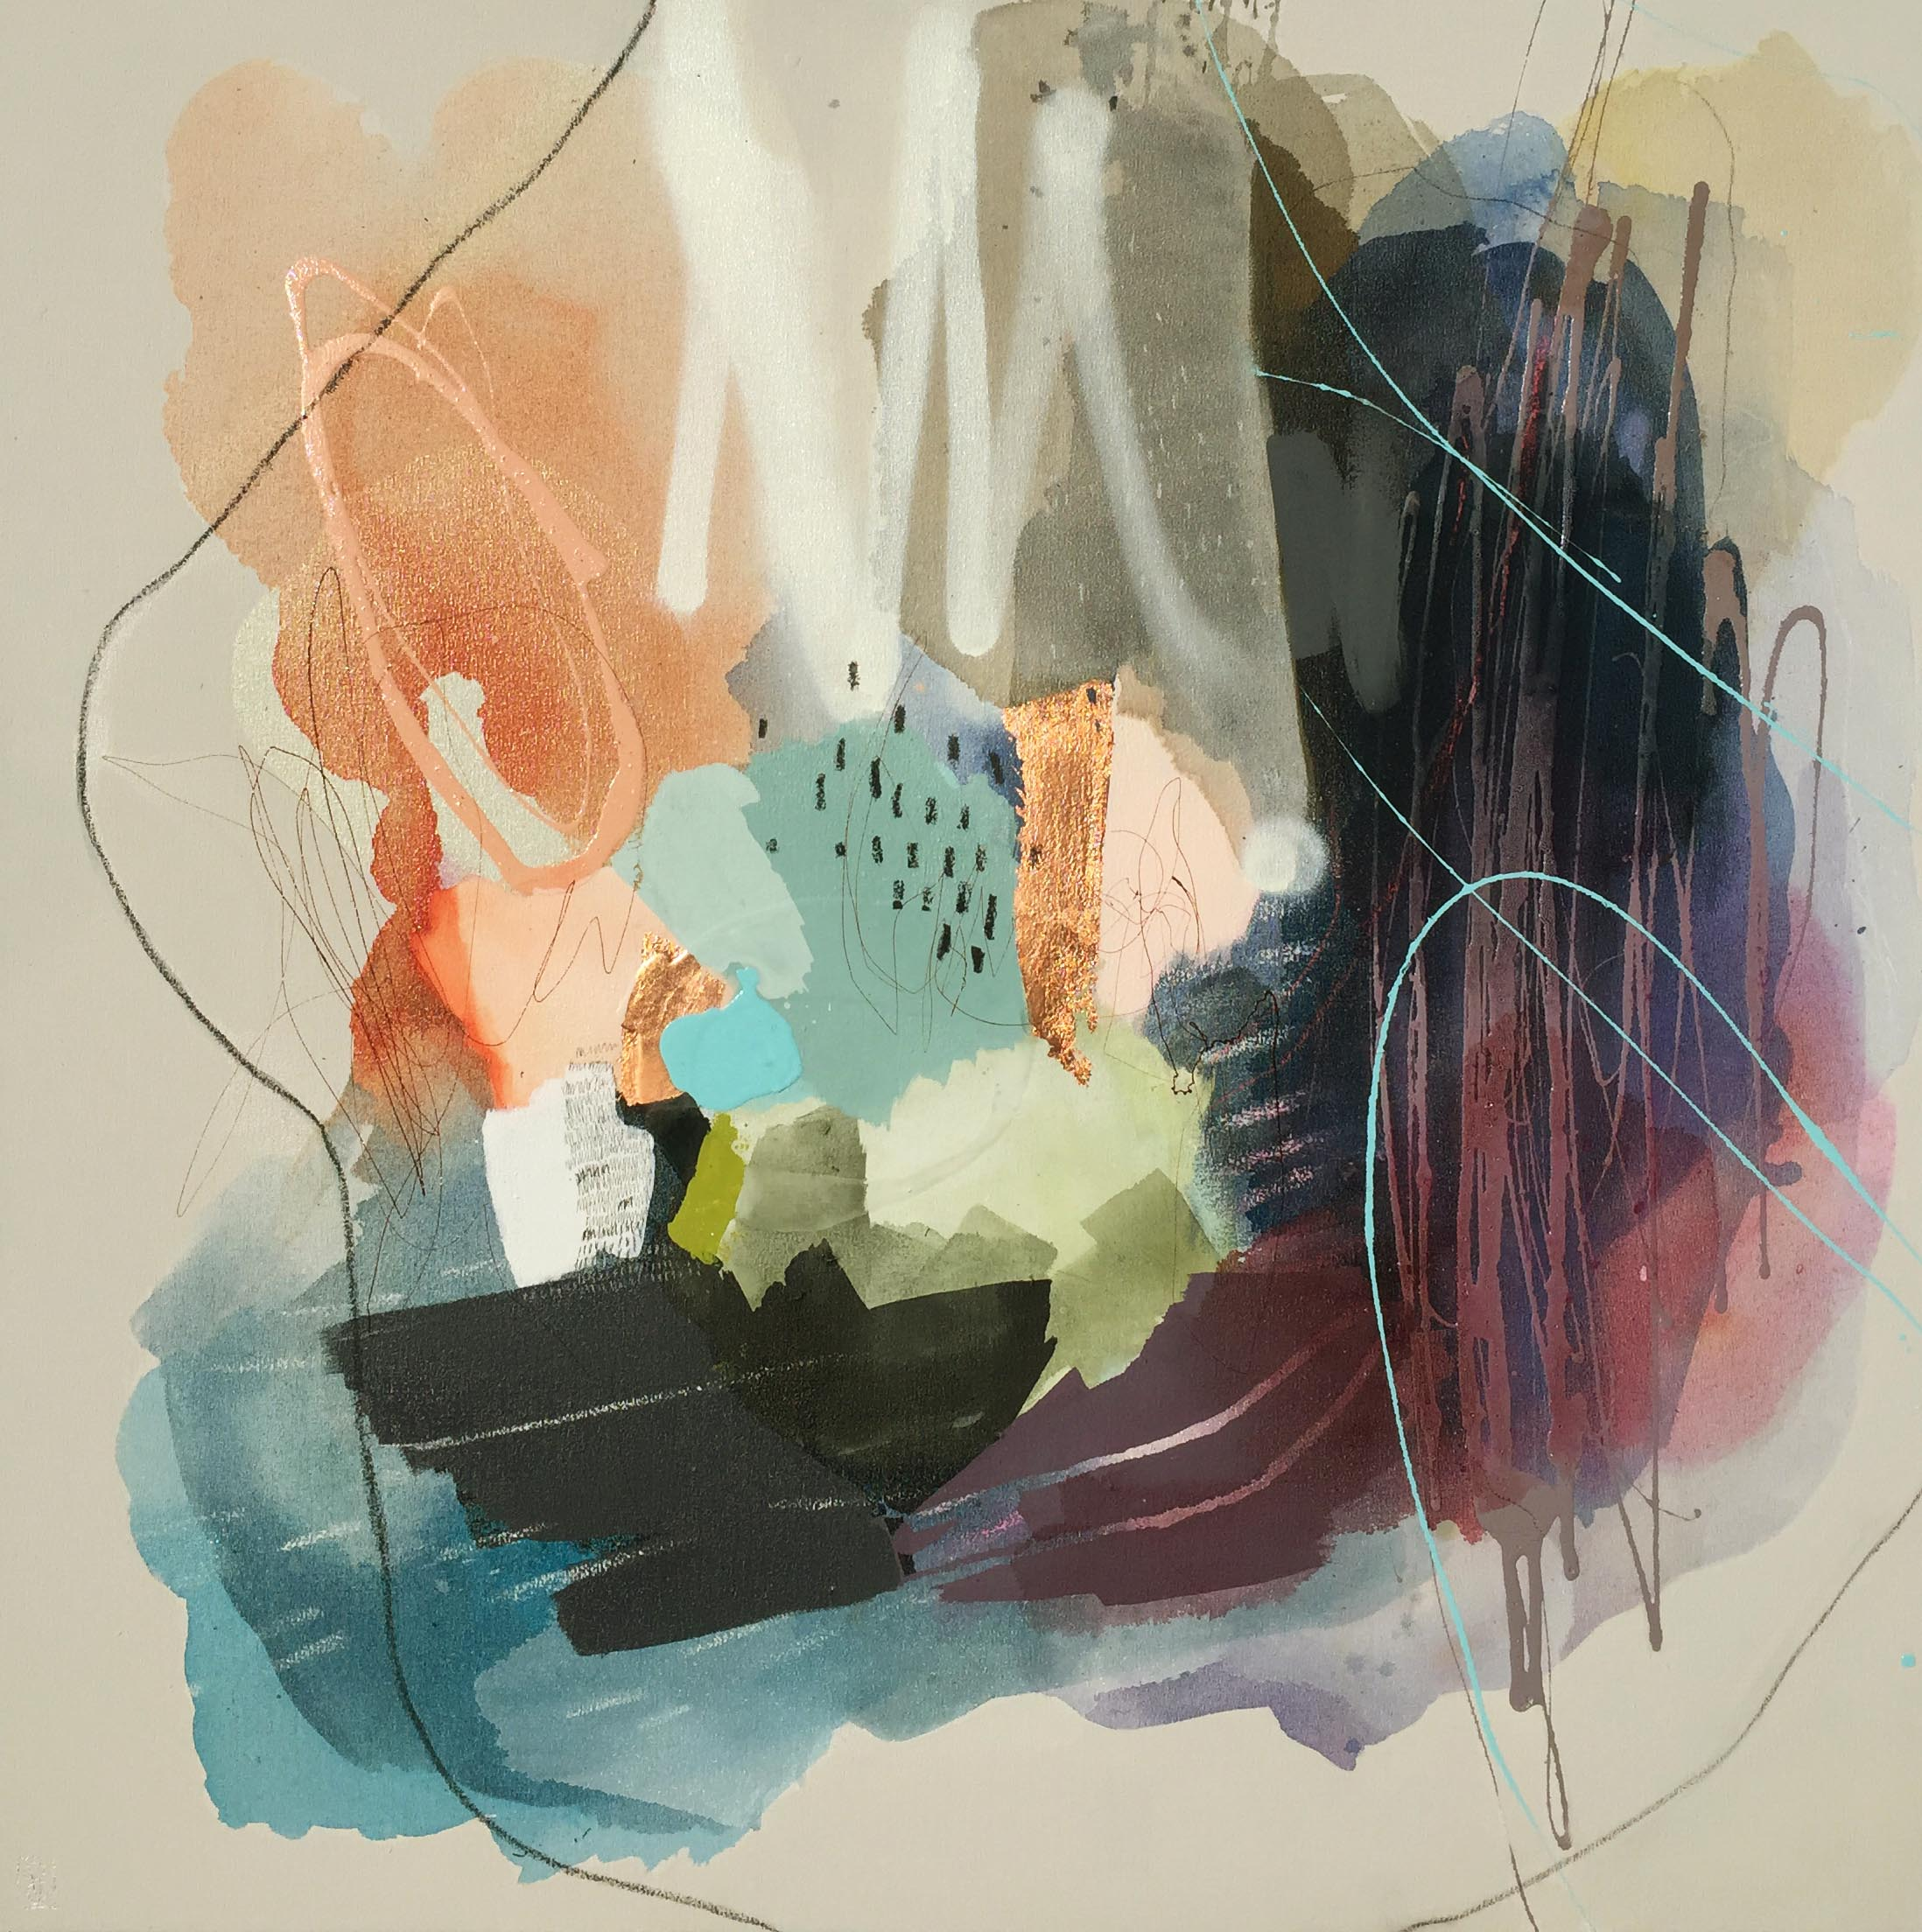 Vicky Sanders Abstract - Pastel Persuasion #2